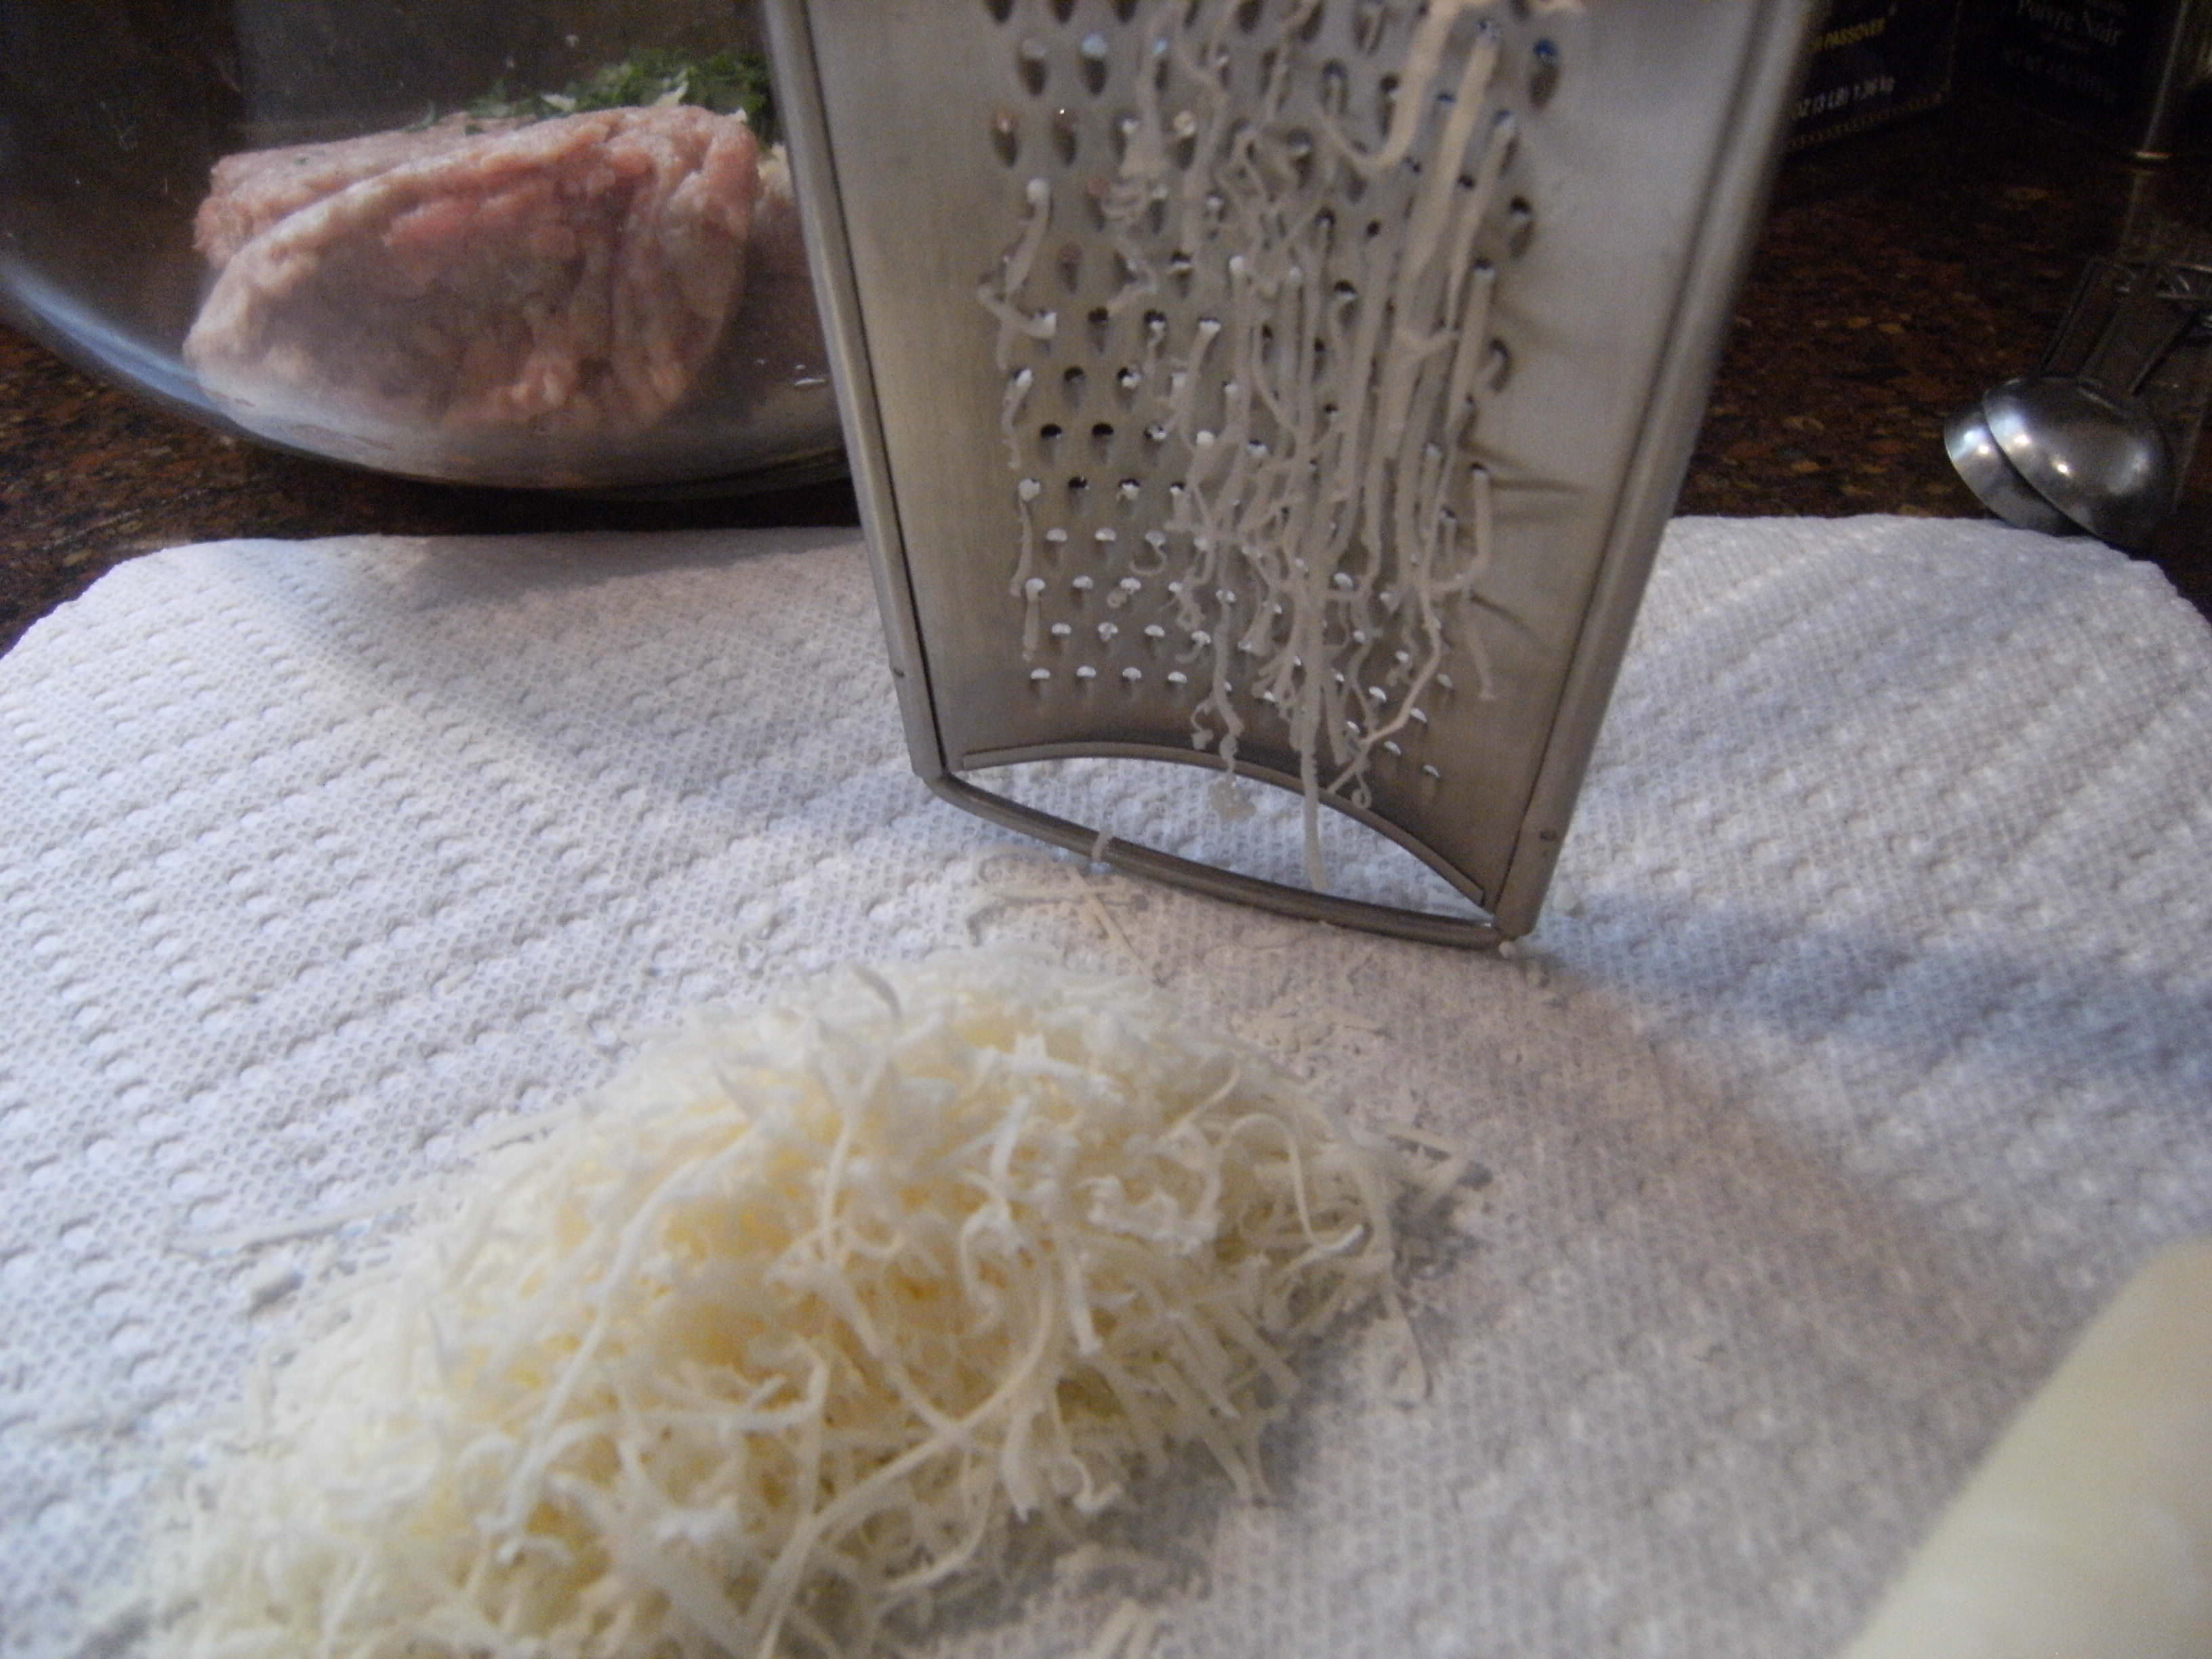 making Turkey Meatball Soup - grating cheese